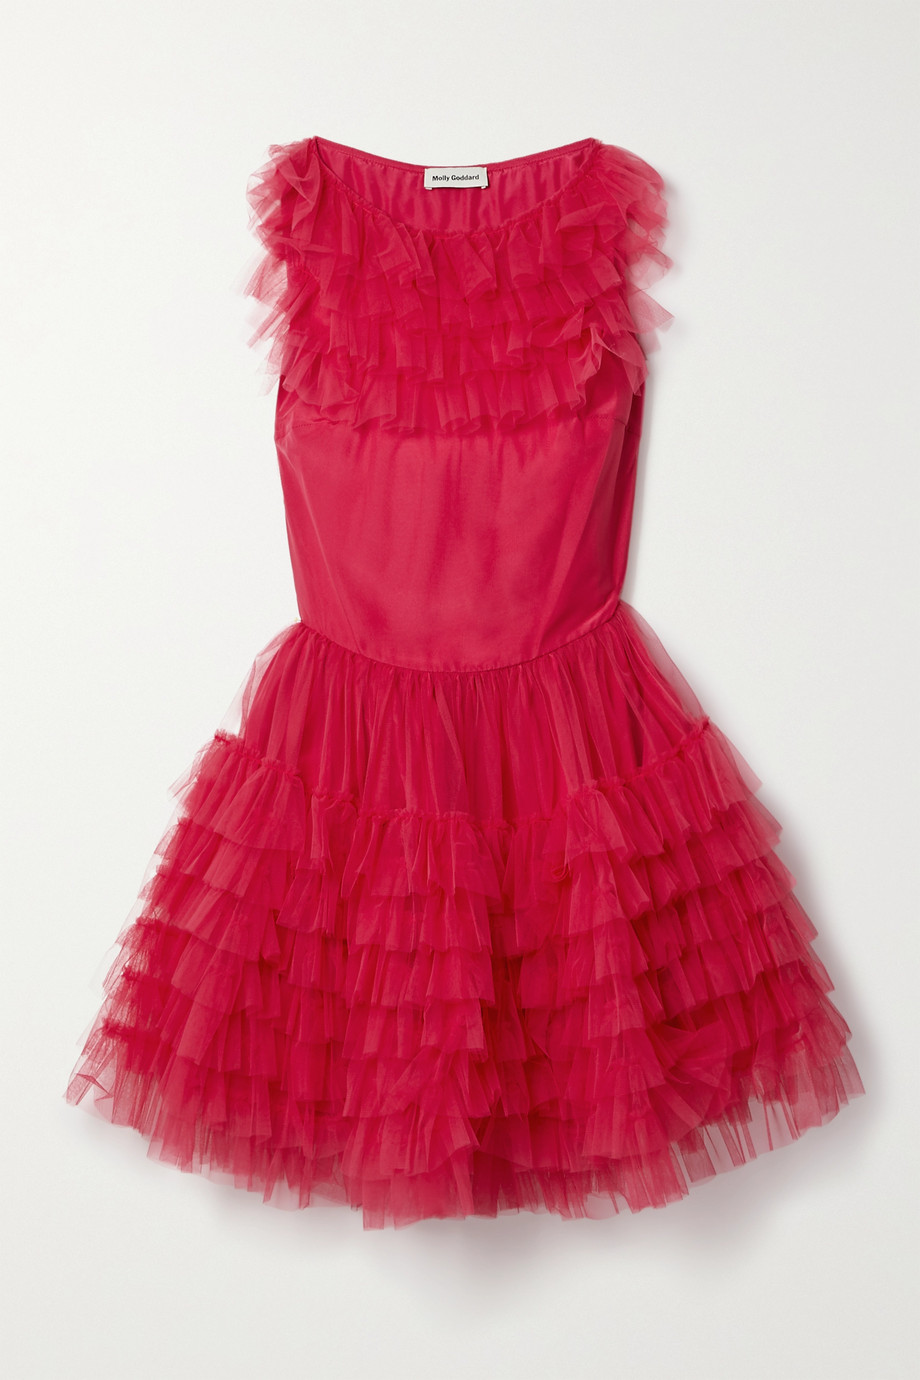 Molly Goddard Felicity ruffled tulle mini dress